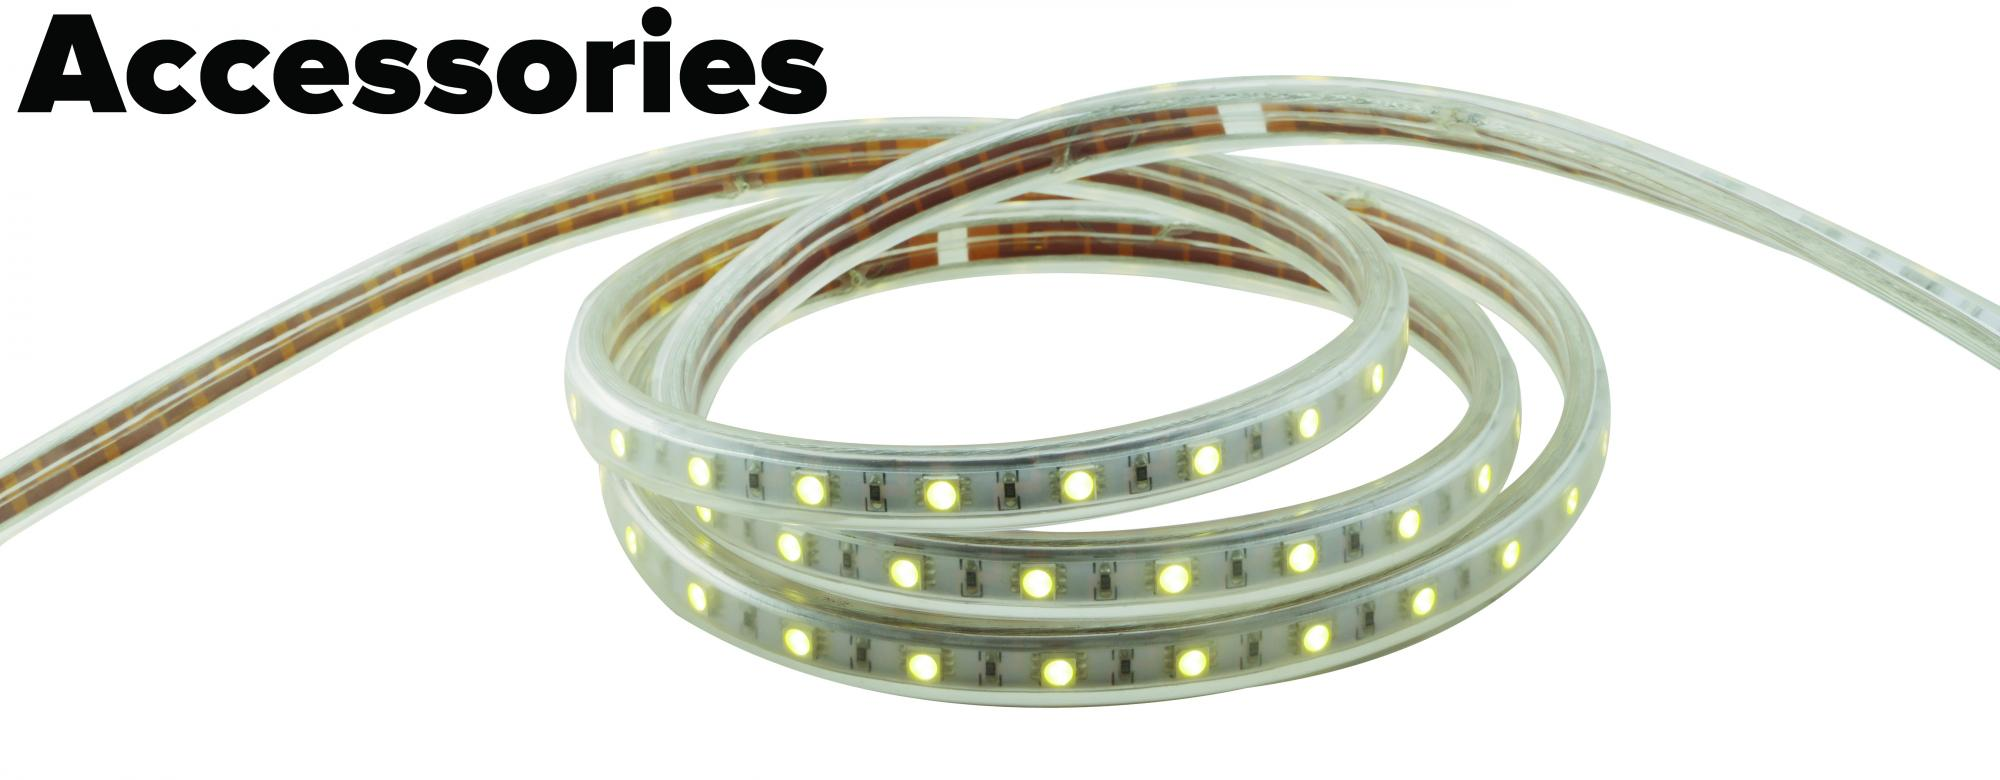 Led flat rope light accessories elco lighting led flat rope light accessories aloadofball Image collections